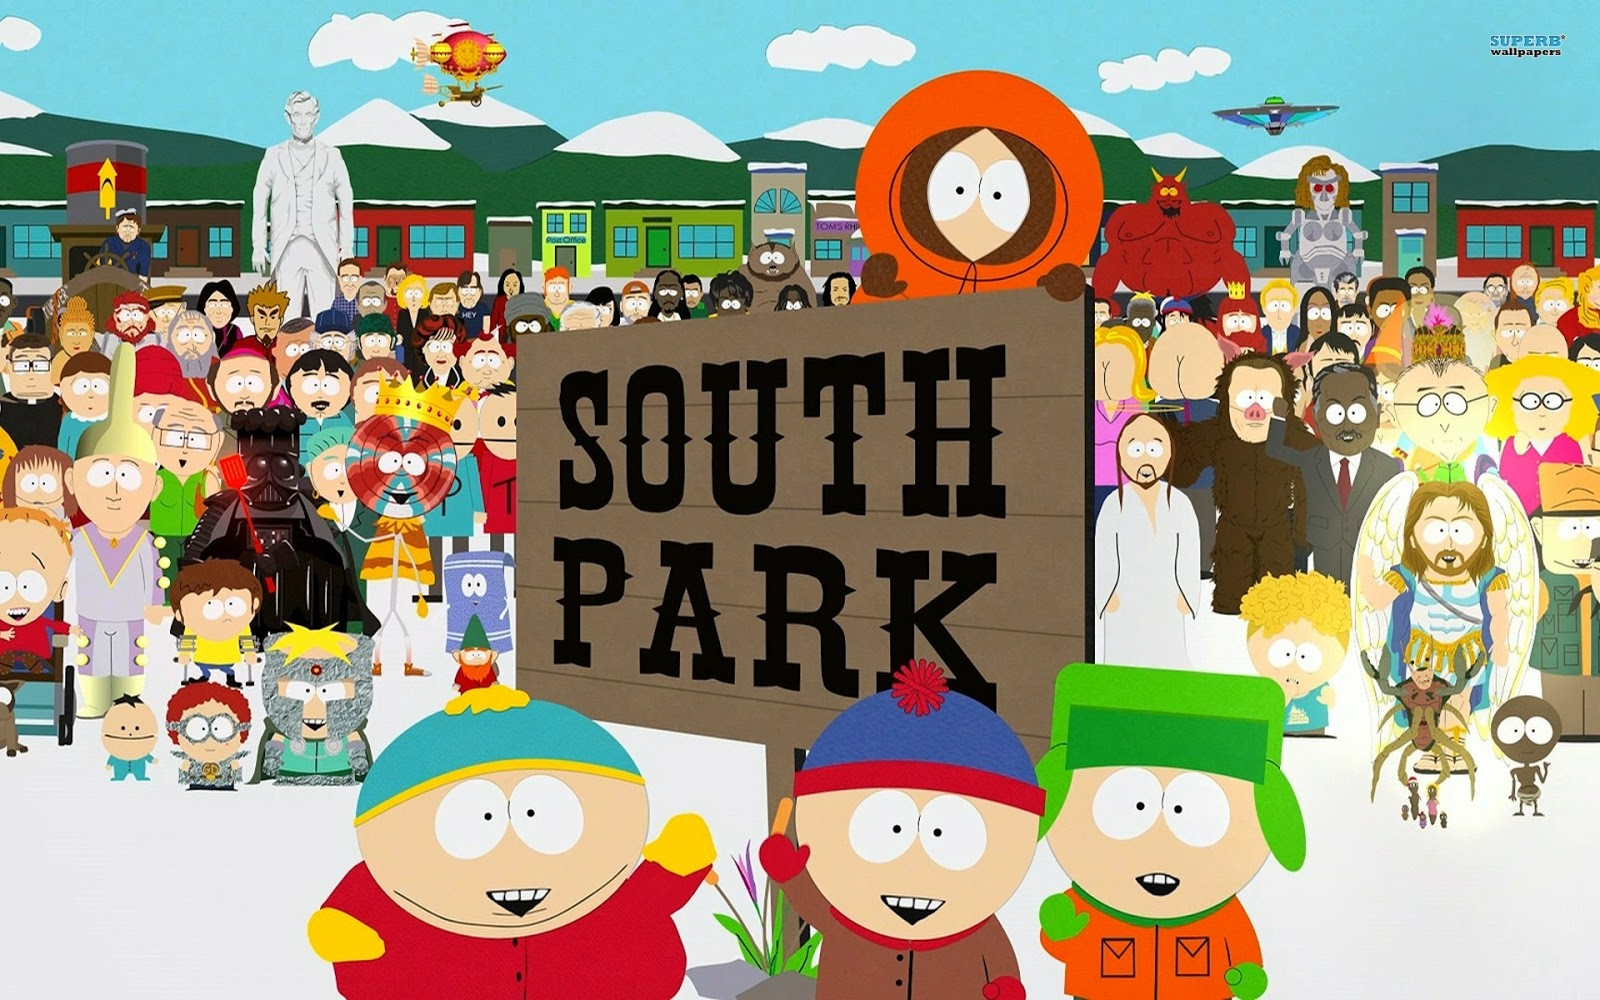 http://gallerycartoon.blogspot.com/2014/11/south-park-gallery-cartoon-pictures-5.html